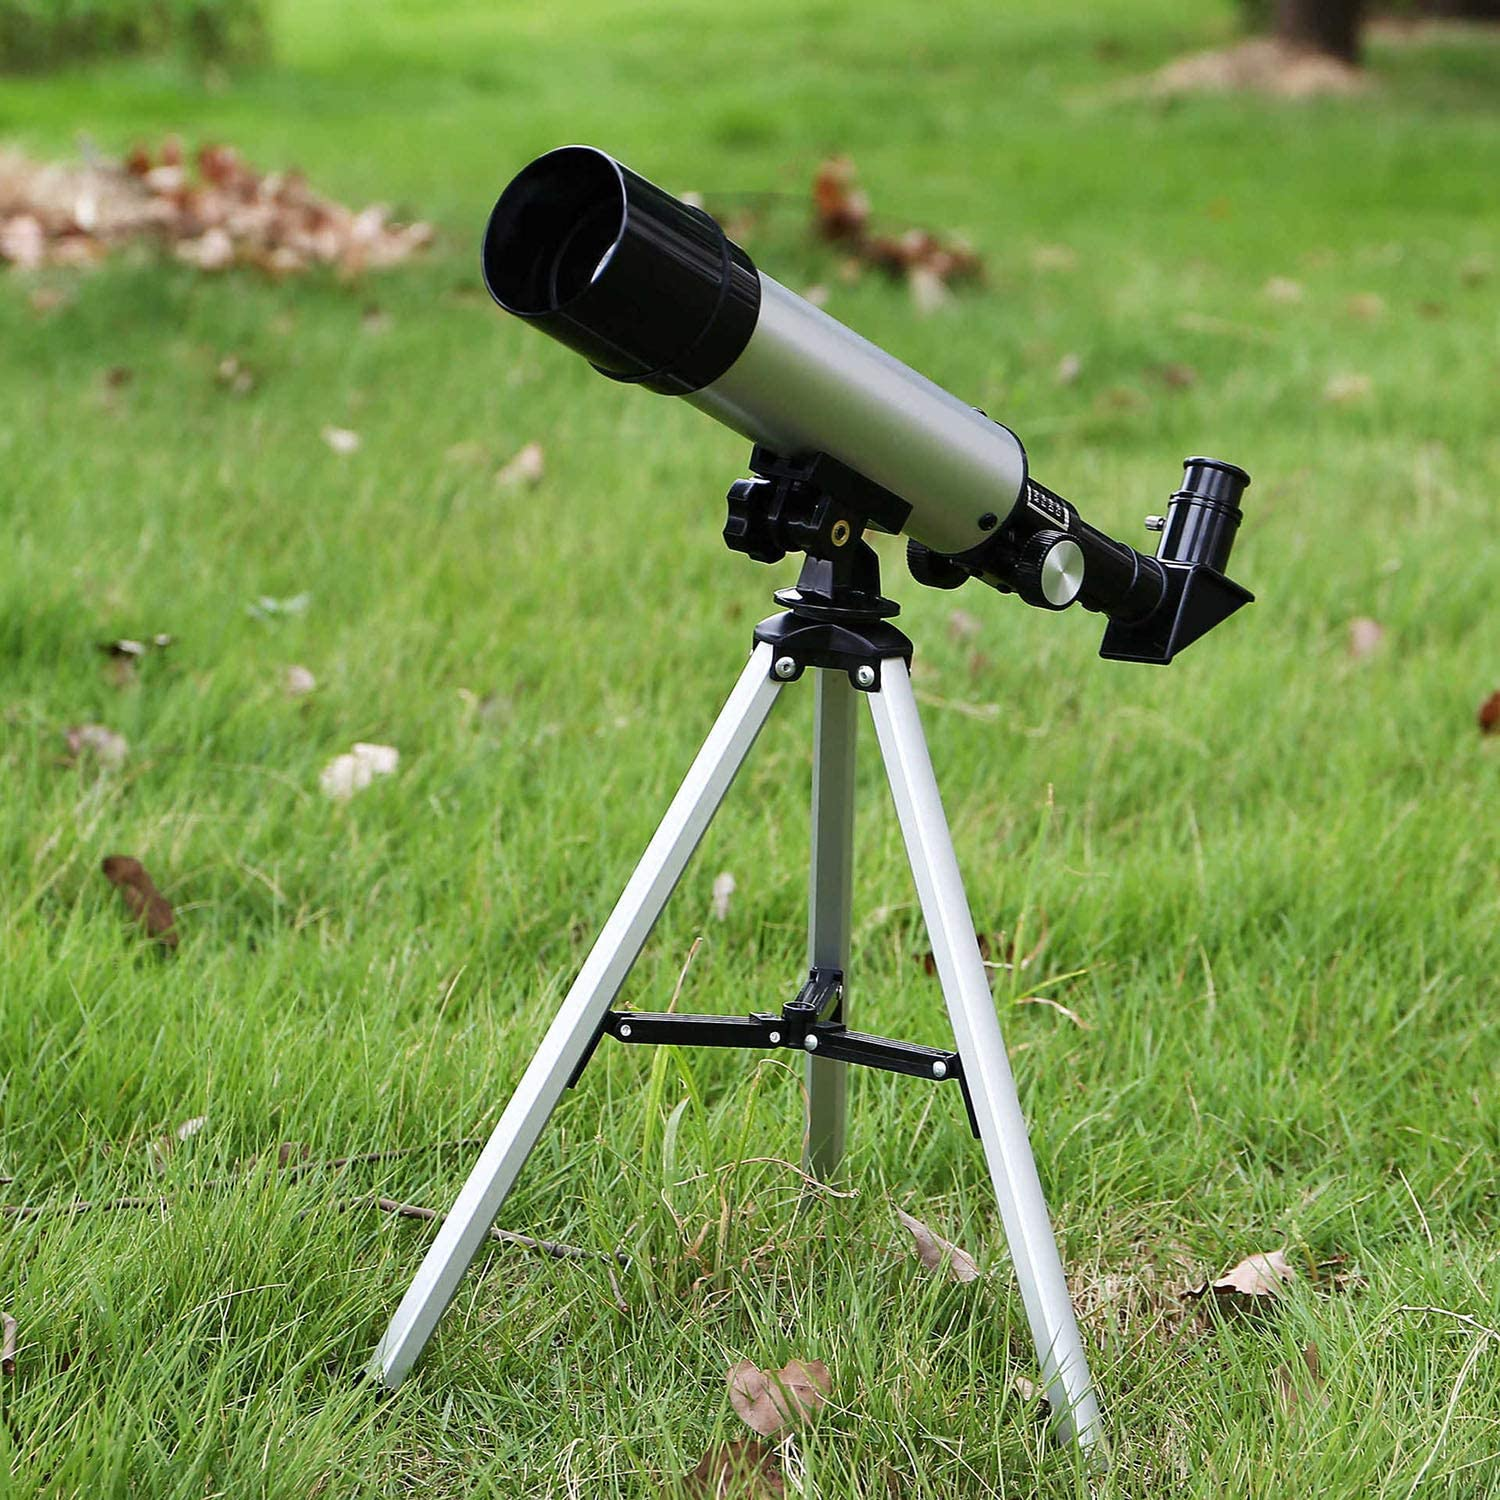 Viewing Mirror Monoculars Student Childrens Gifts YAMADIE Access Astronomical Telescope